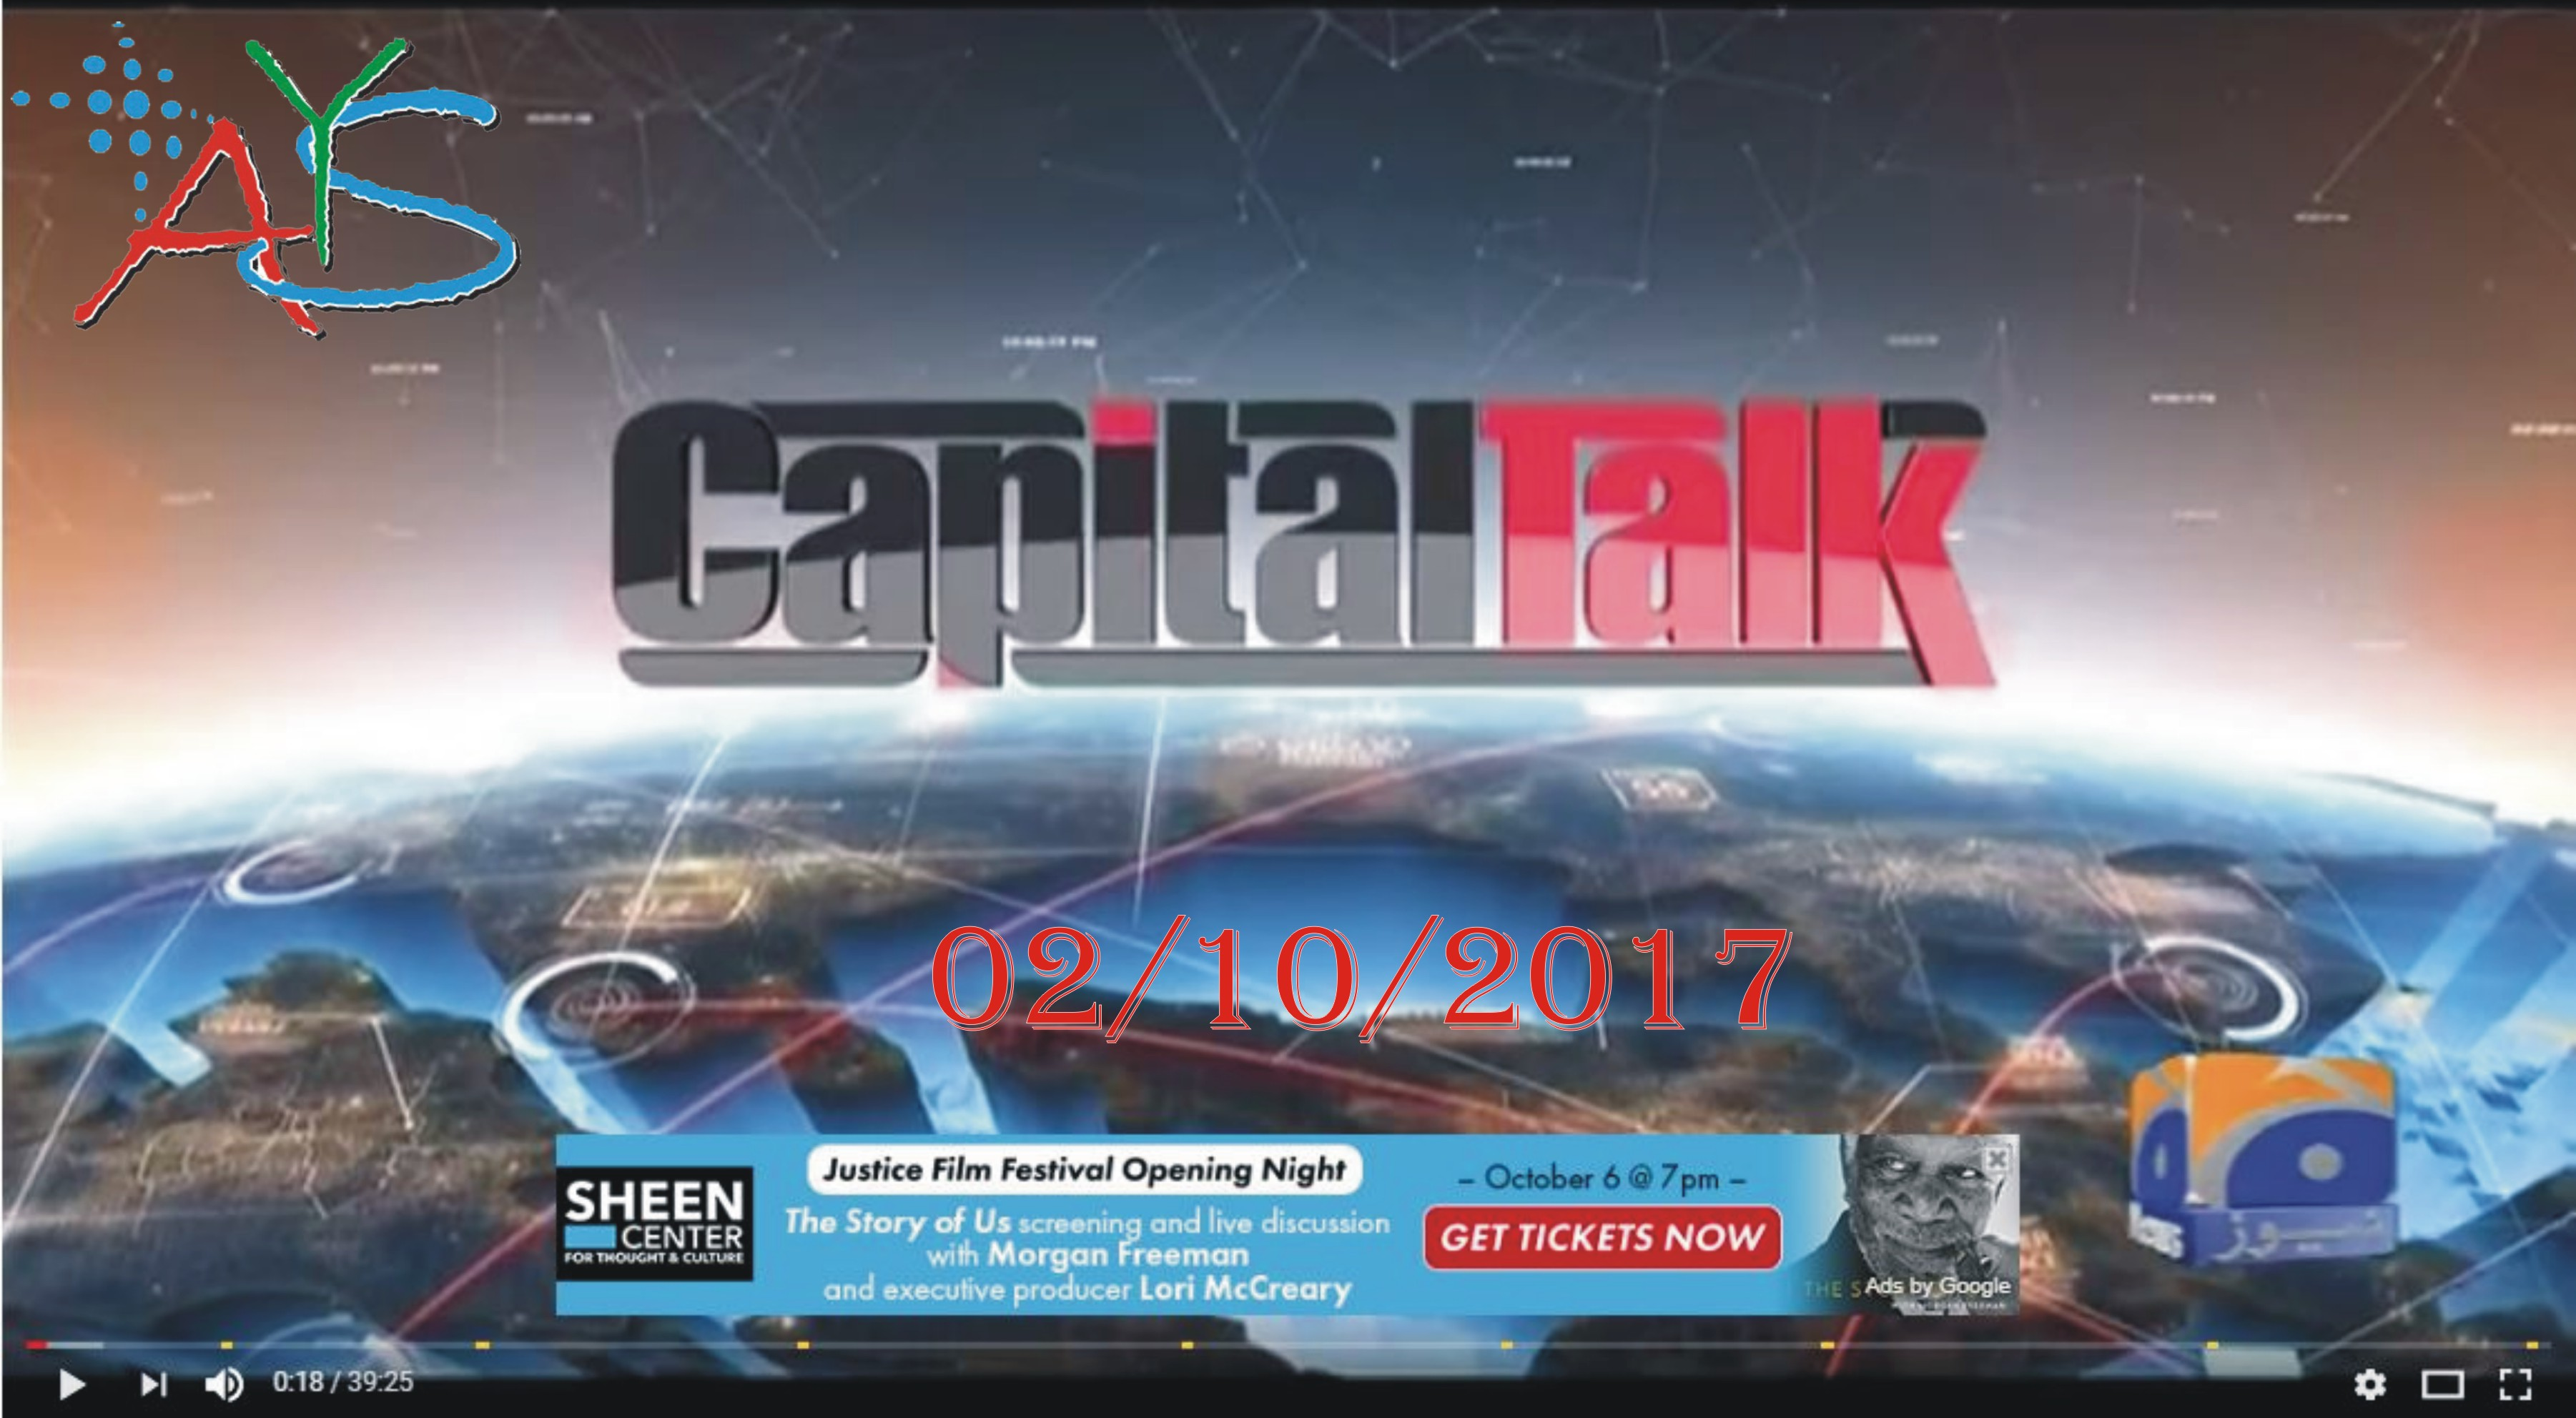 01 Oct 2017 - Capital Talk - 02 October 2017